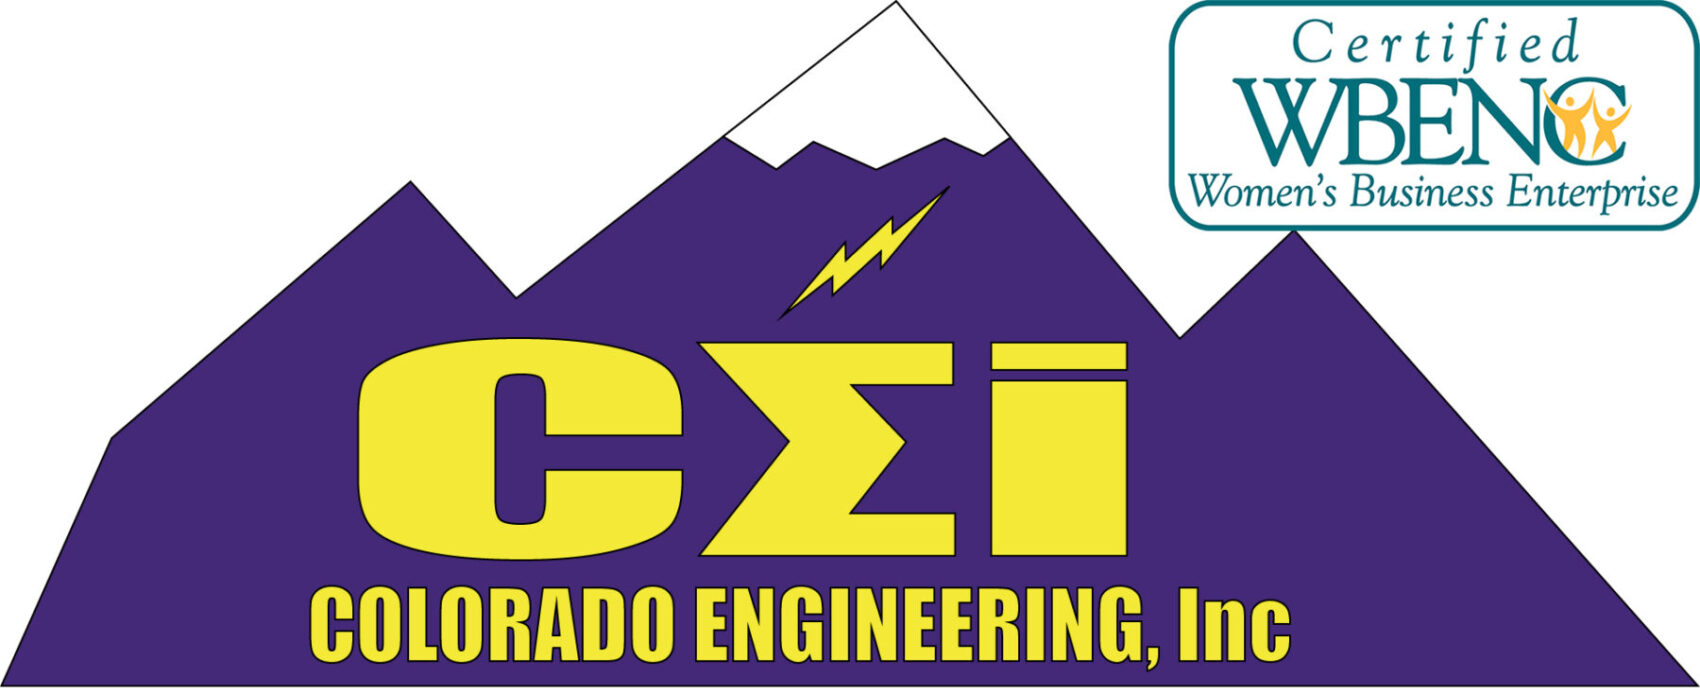 CEI logo with WBENC